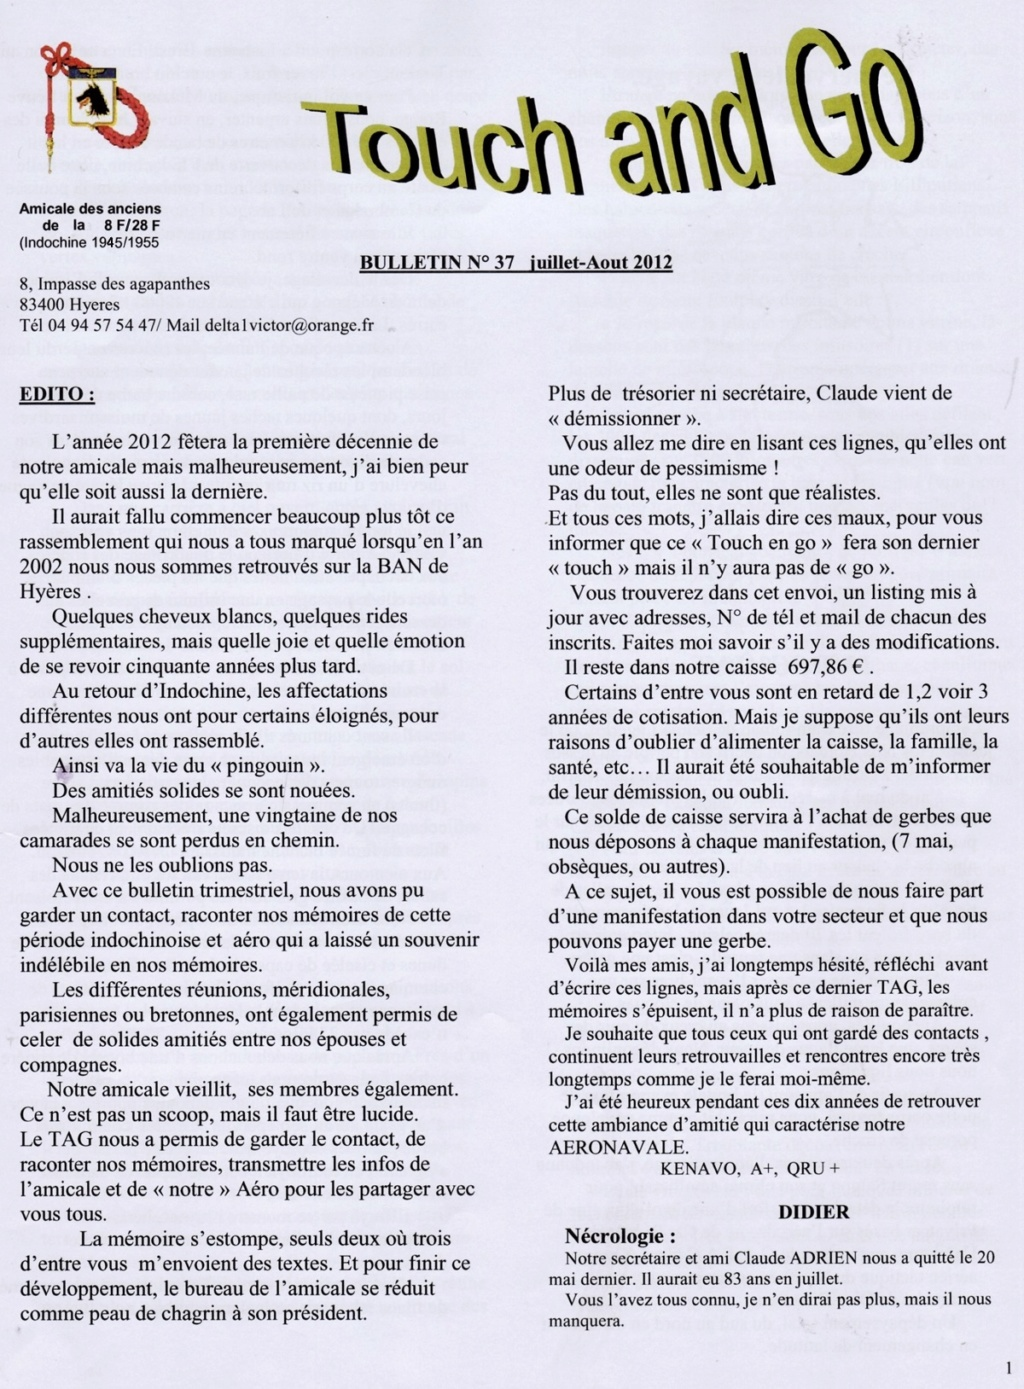 [Opérations de guerre] INDOCHINE - TOME 10 - Page 23 New16410